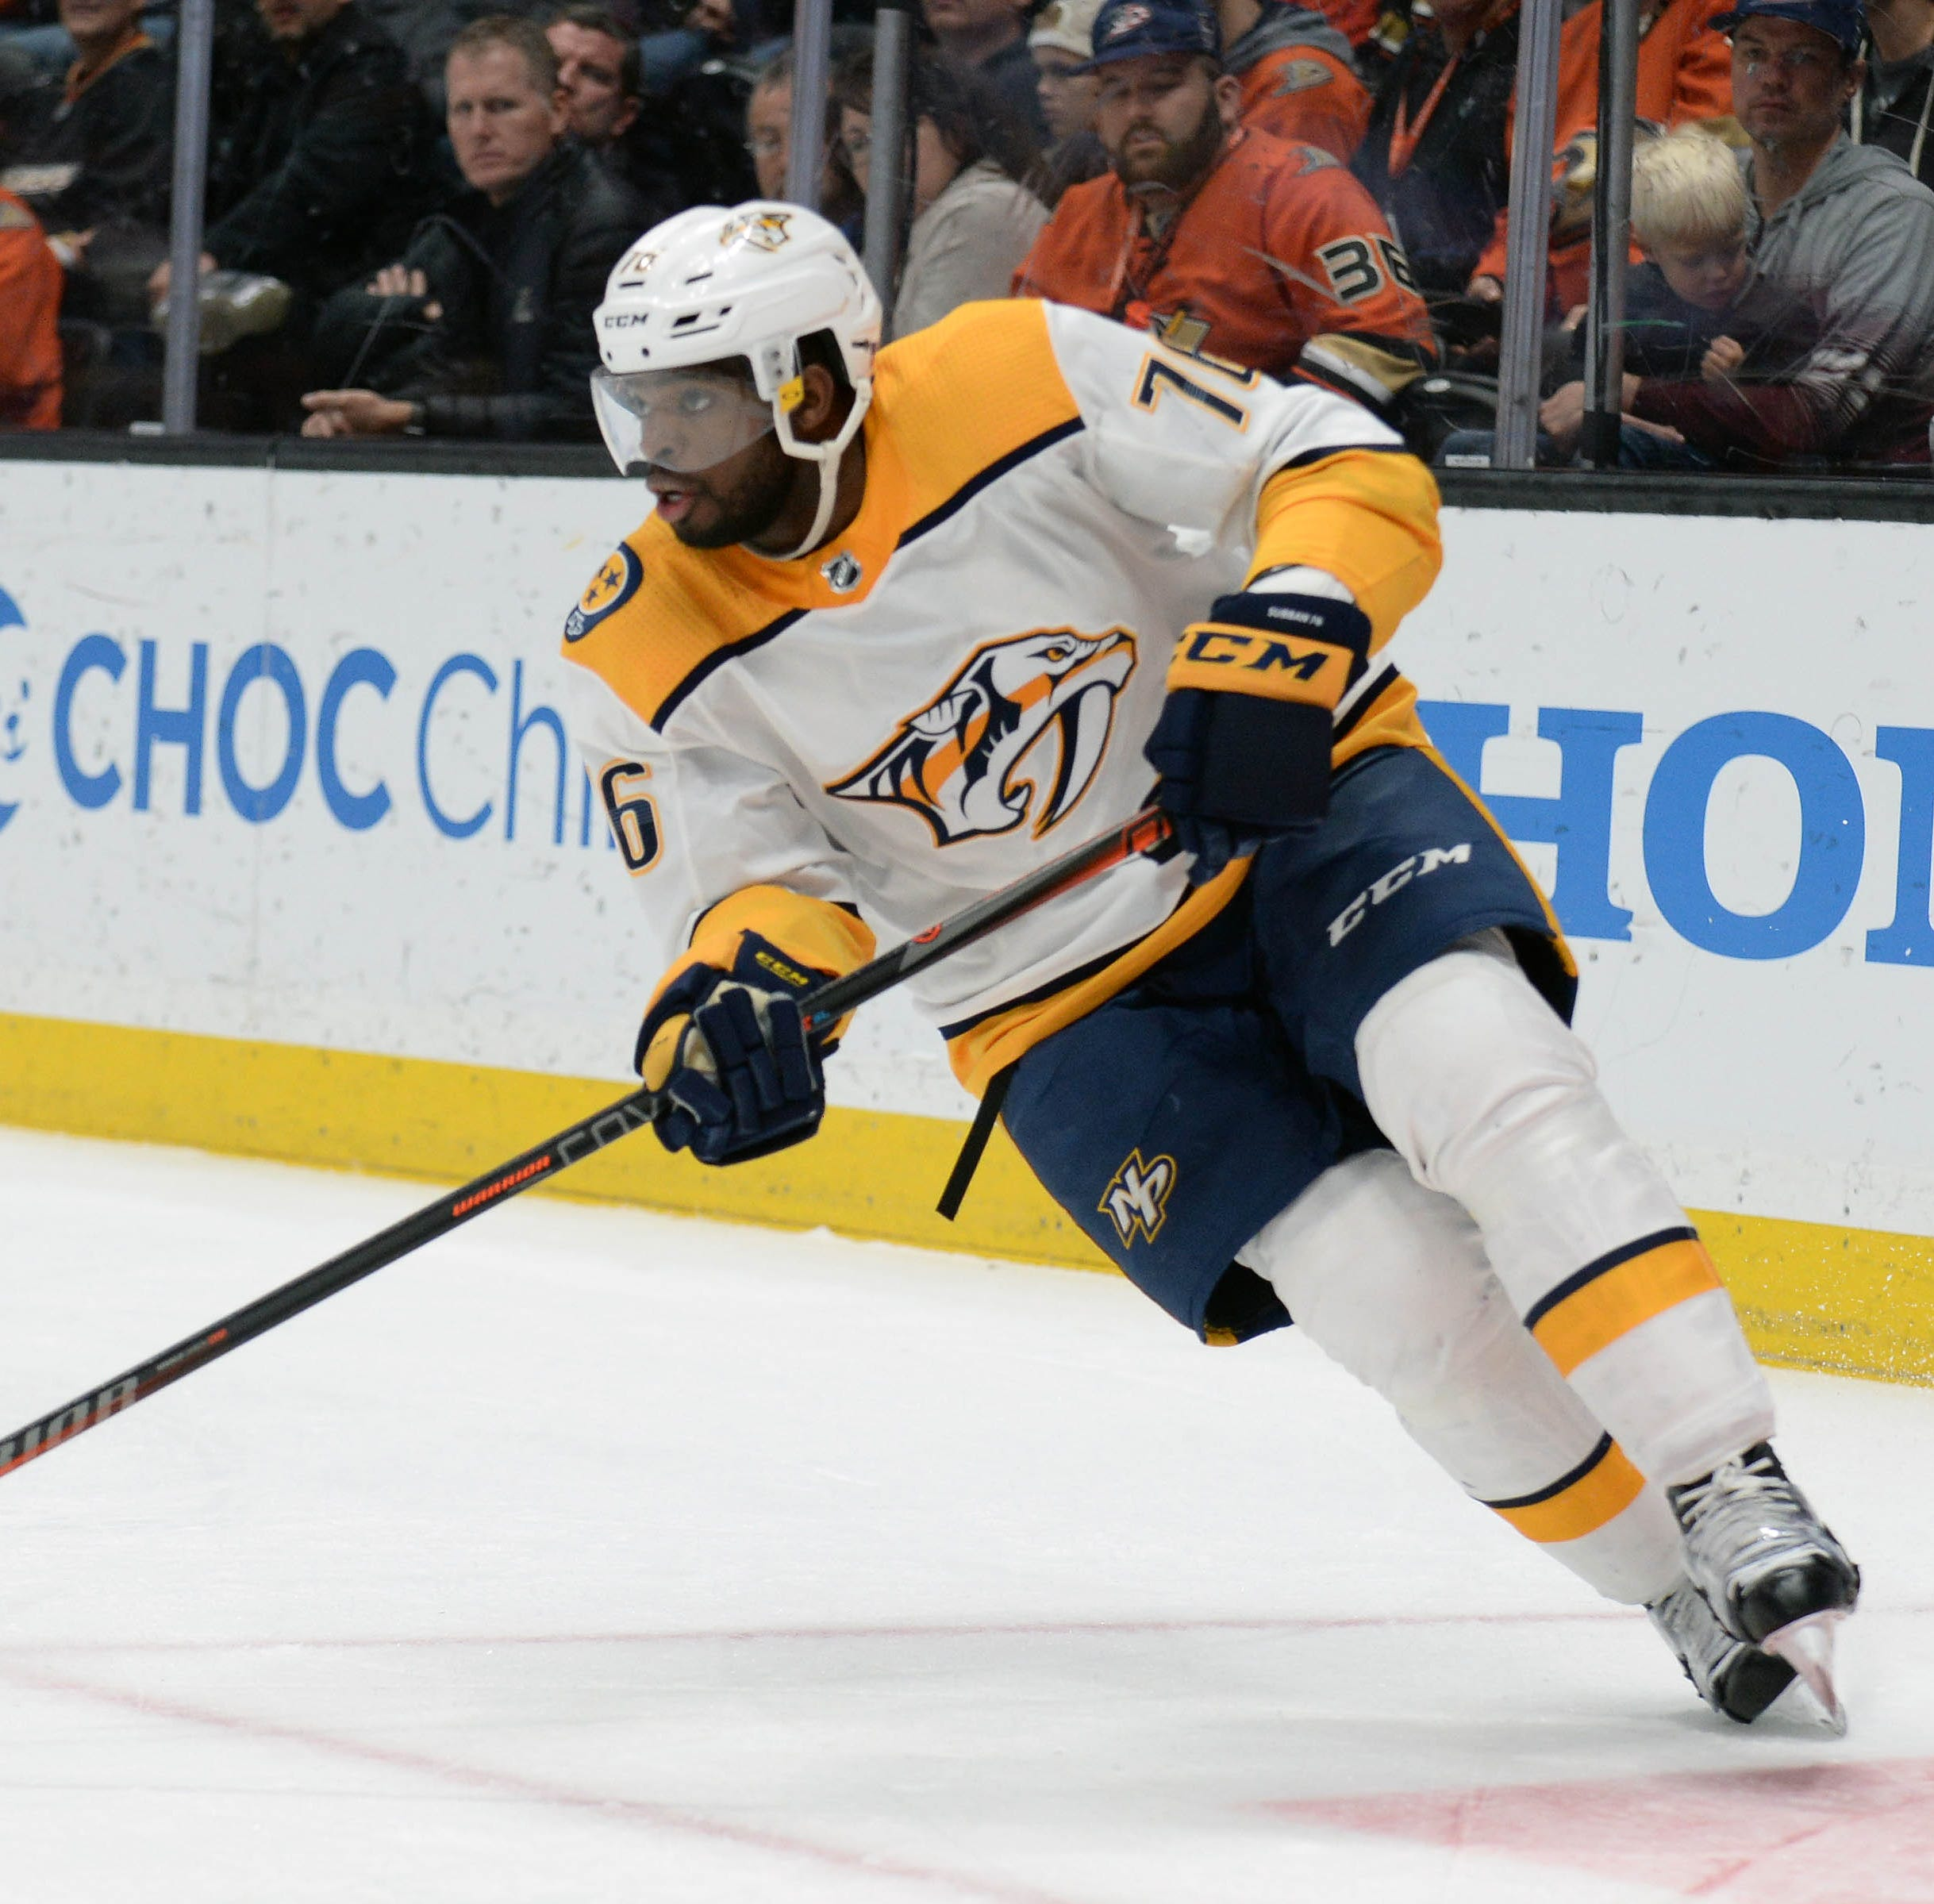 Predators coach Peter Laviolette quiet on P.K. Subban's status as injuries pile up